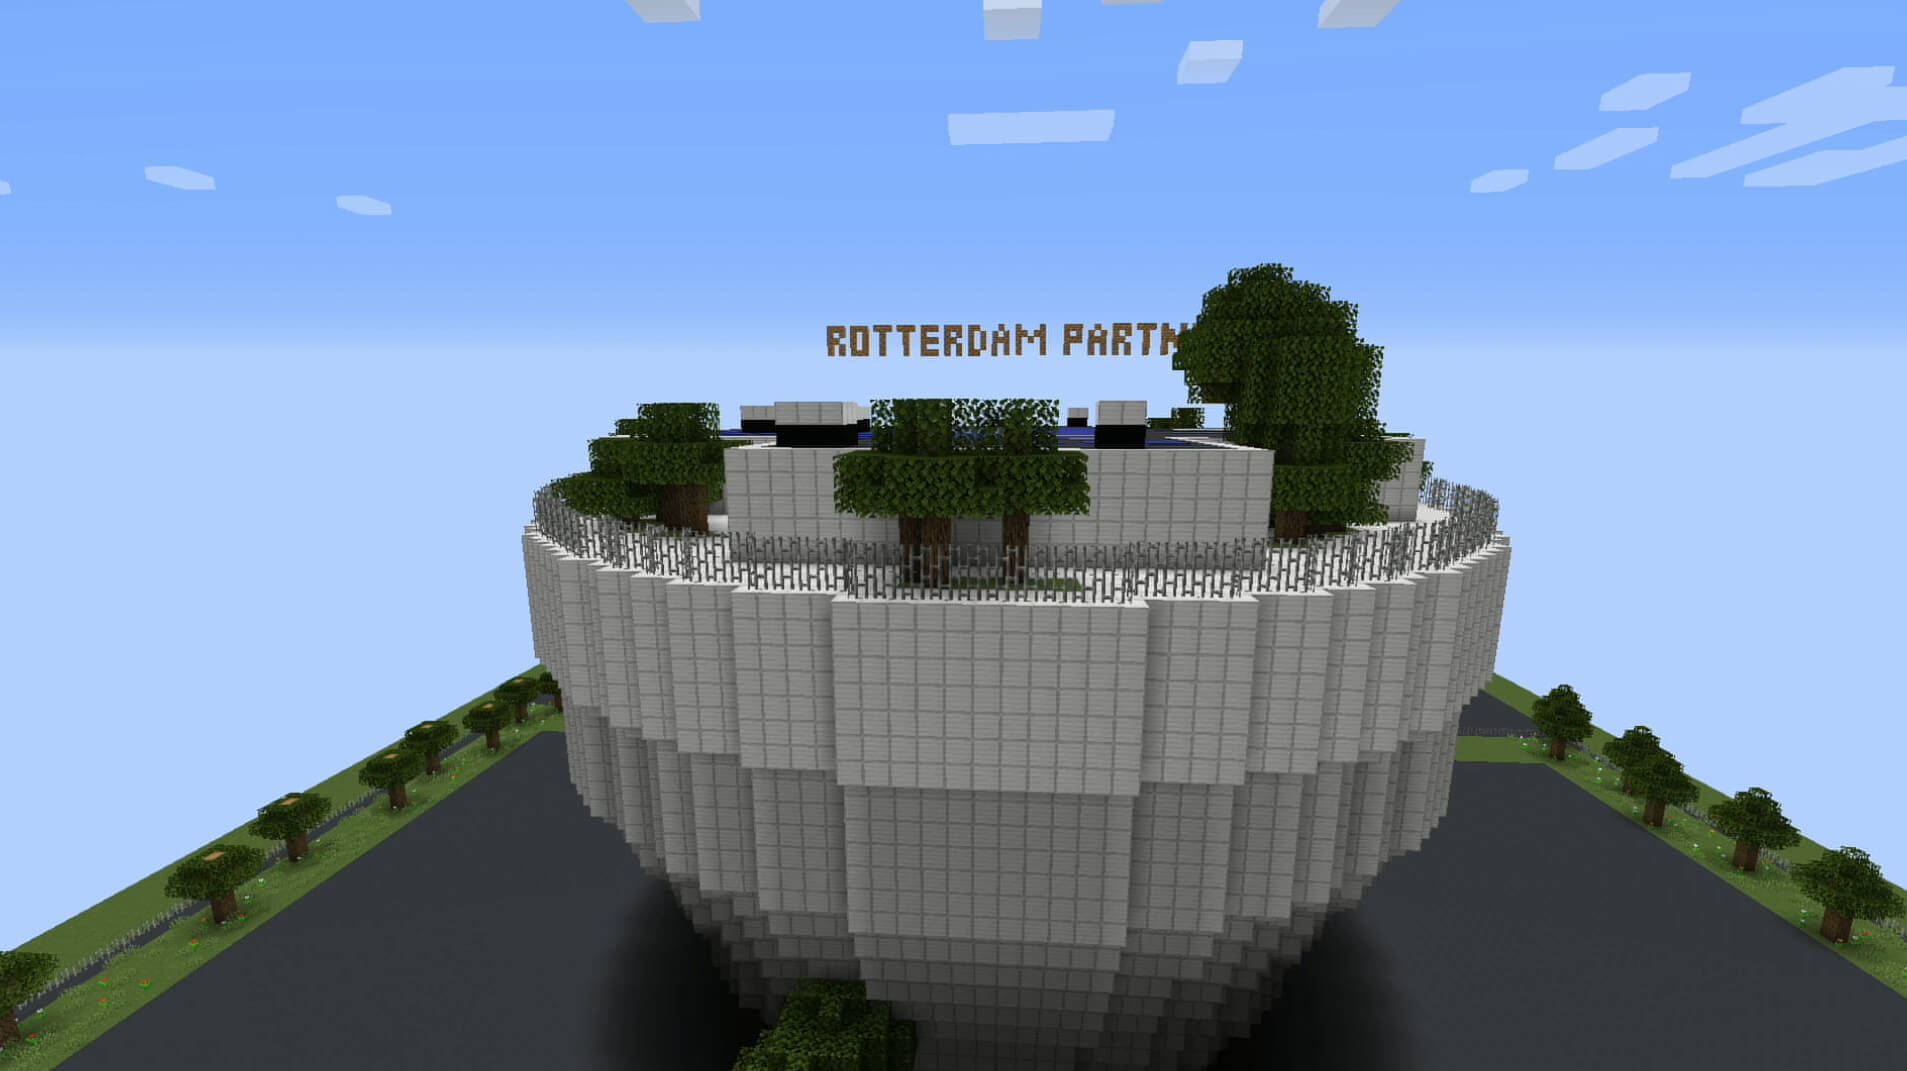 Students recreated the Depot building of Museum Boijmans Van Beuningen live in Minecraft.